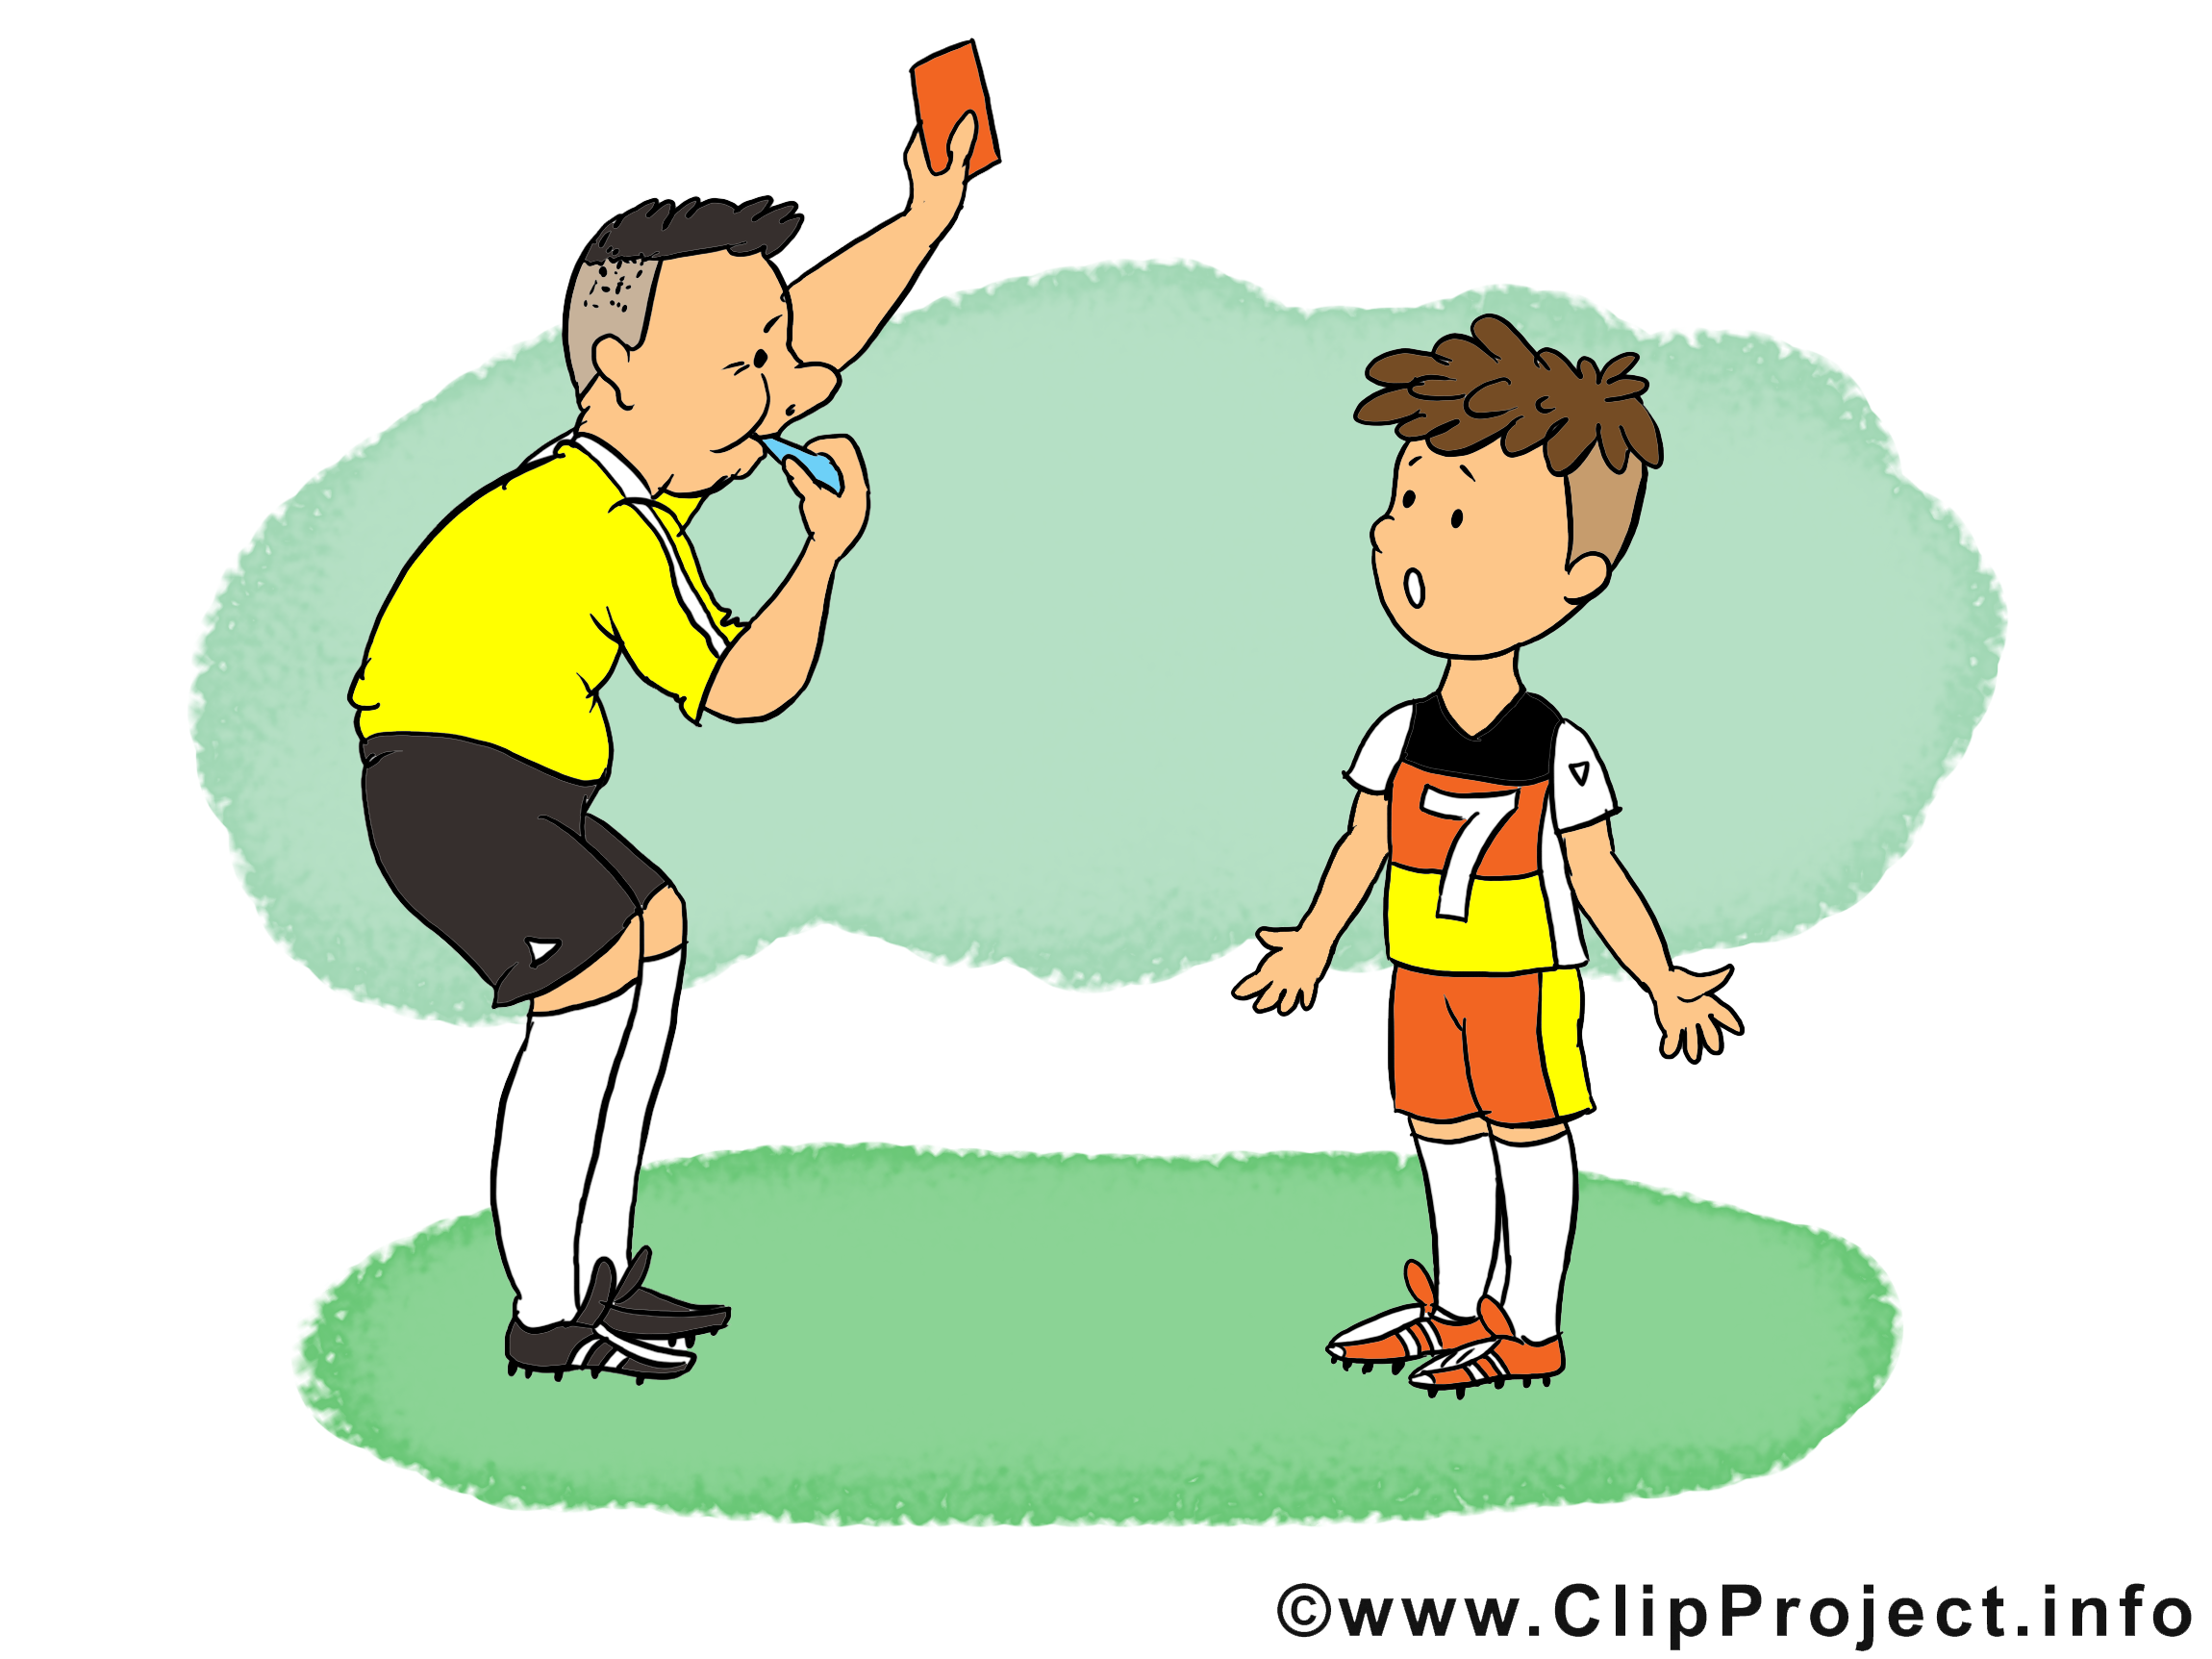 Arbitre clipart - Football dessins gratuits